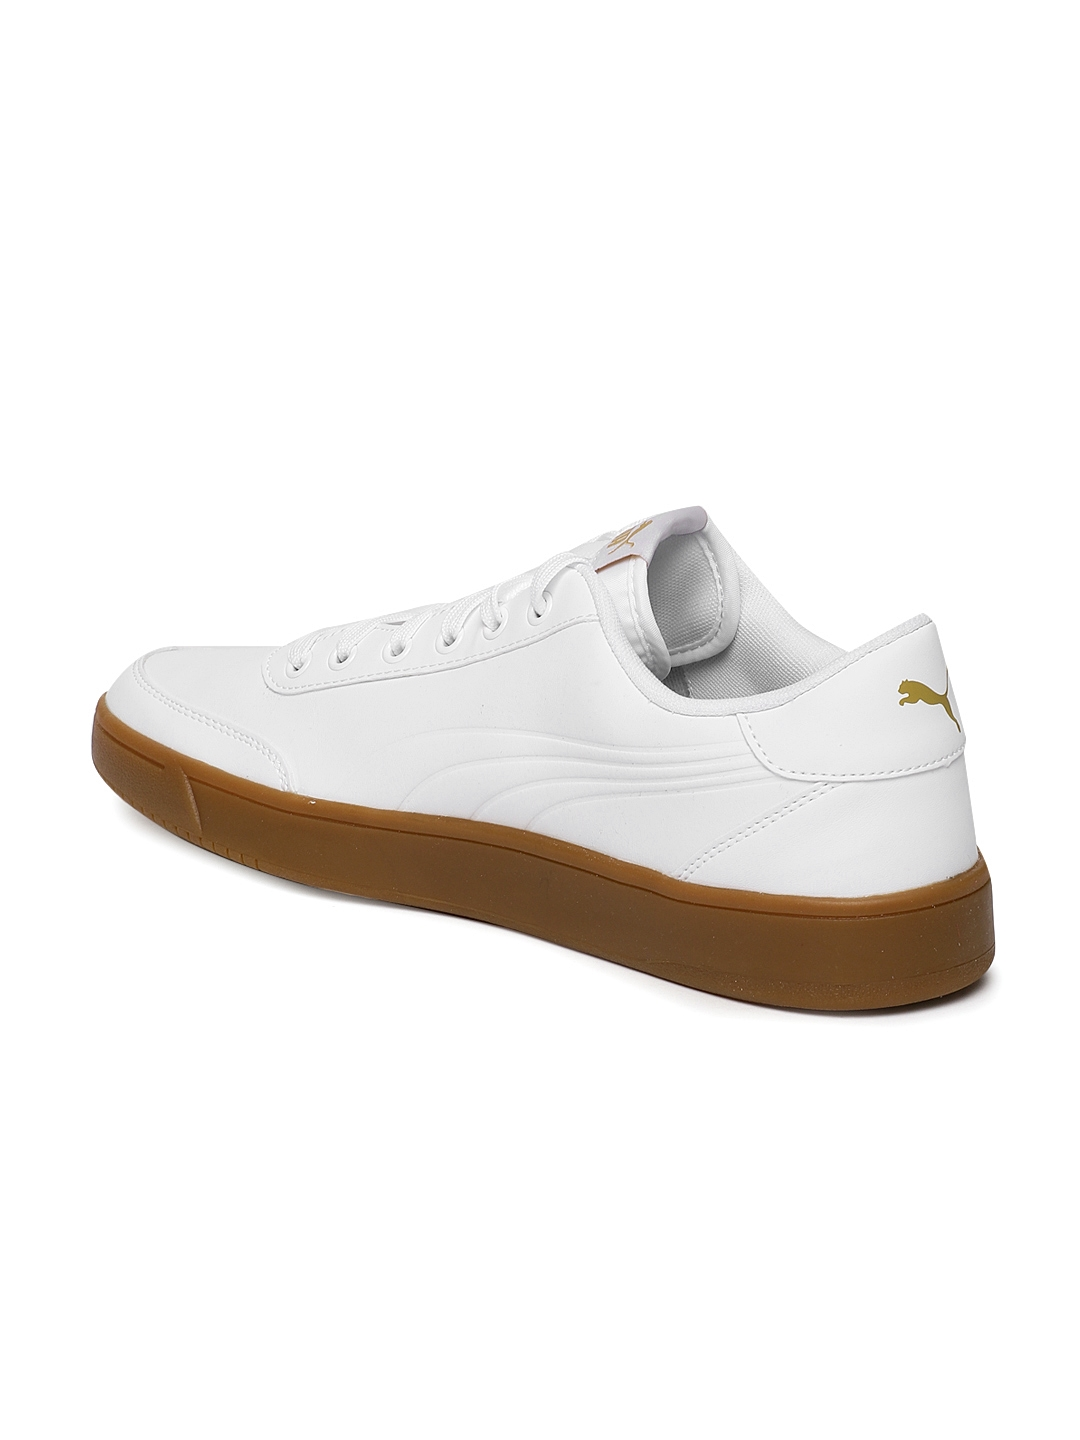 71e6d9af27f2 Buy Puma Men White Court Breaker L Mono Sneakers - Casual Shoes for ...